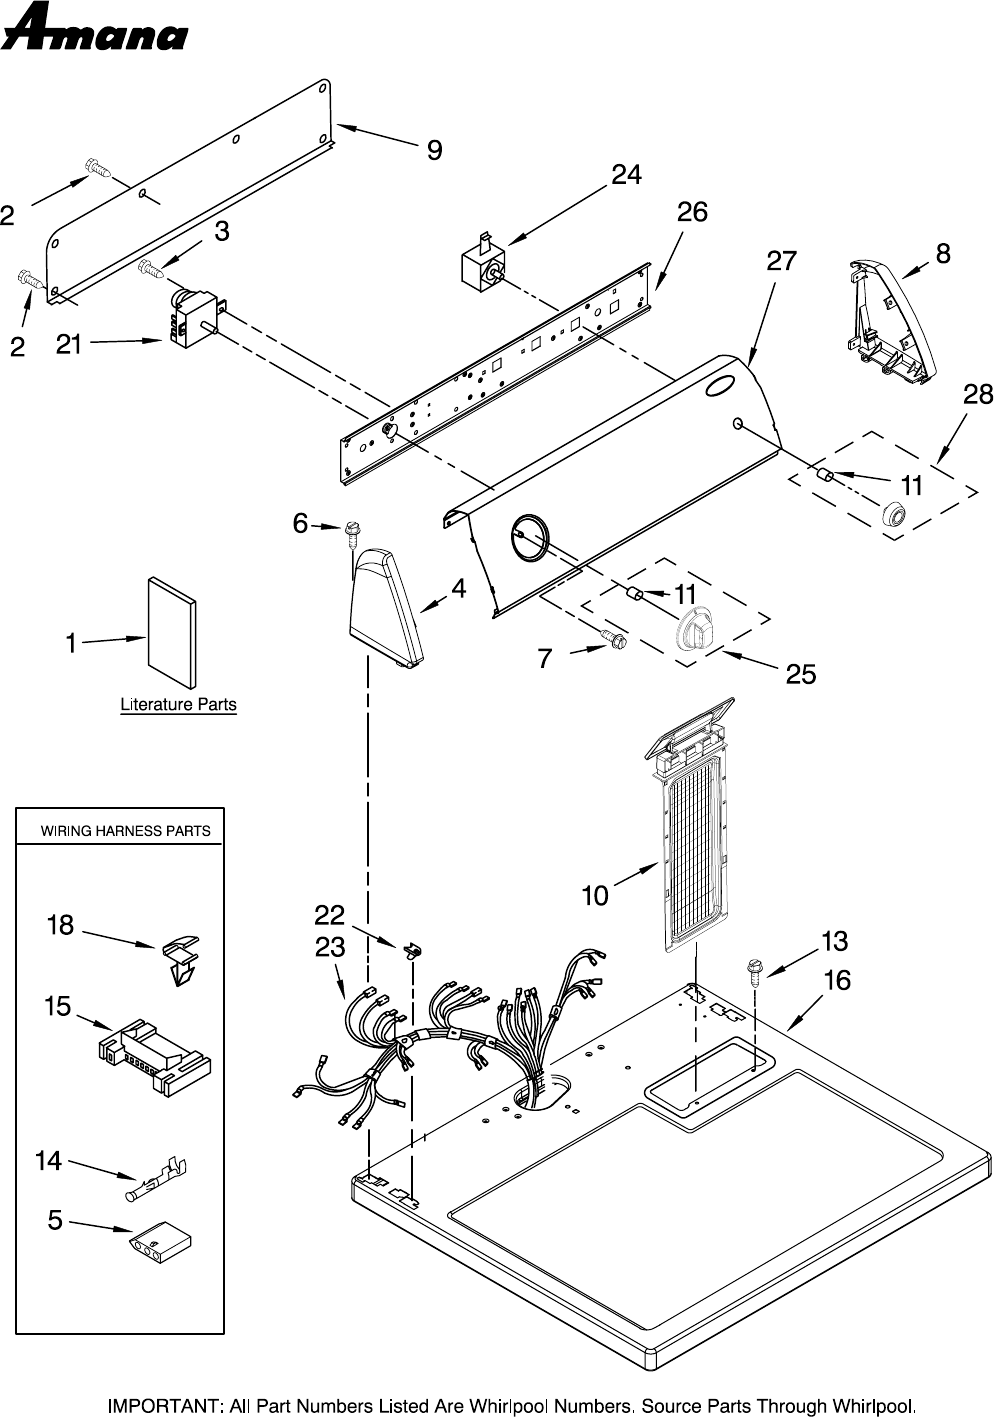 Amana Dryer Schematic - Wiring Diagrams on